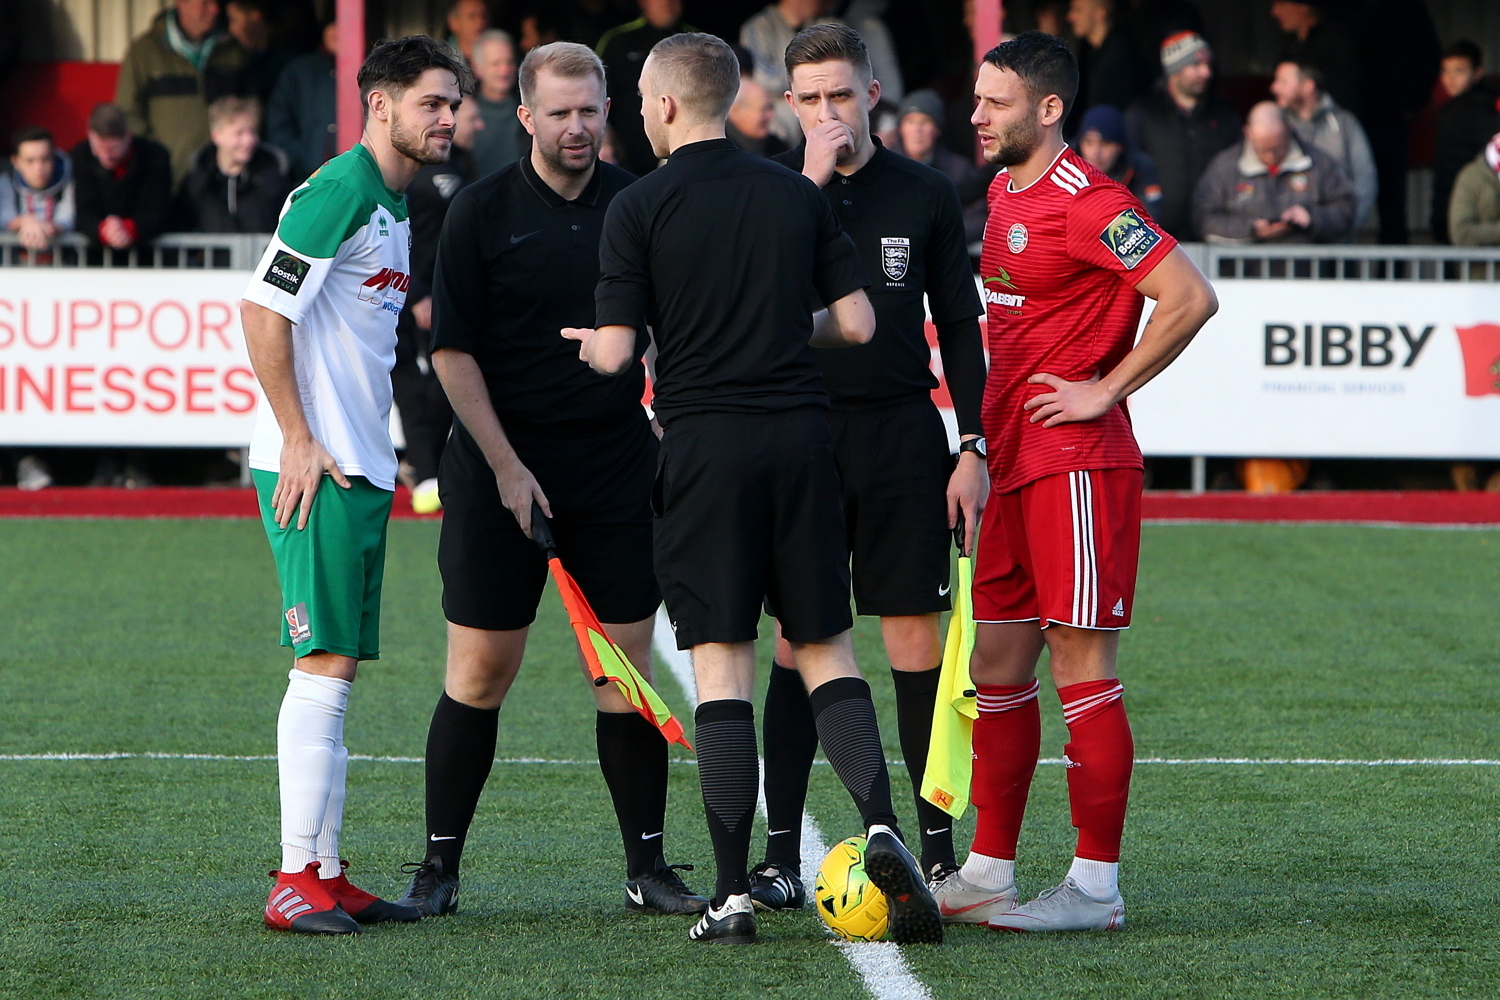 Read the full article - Bank Holiday Derby Showdown